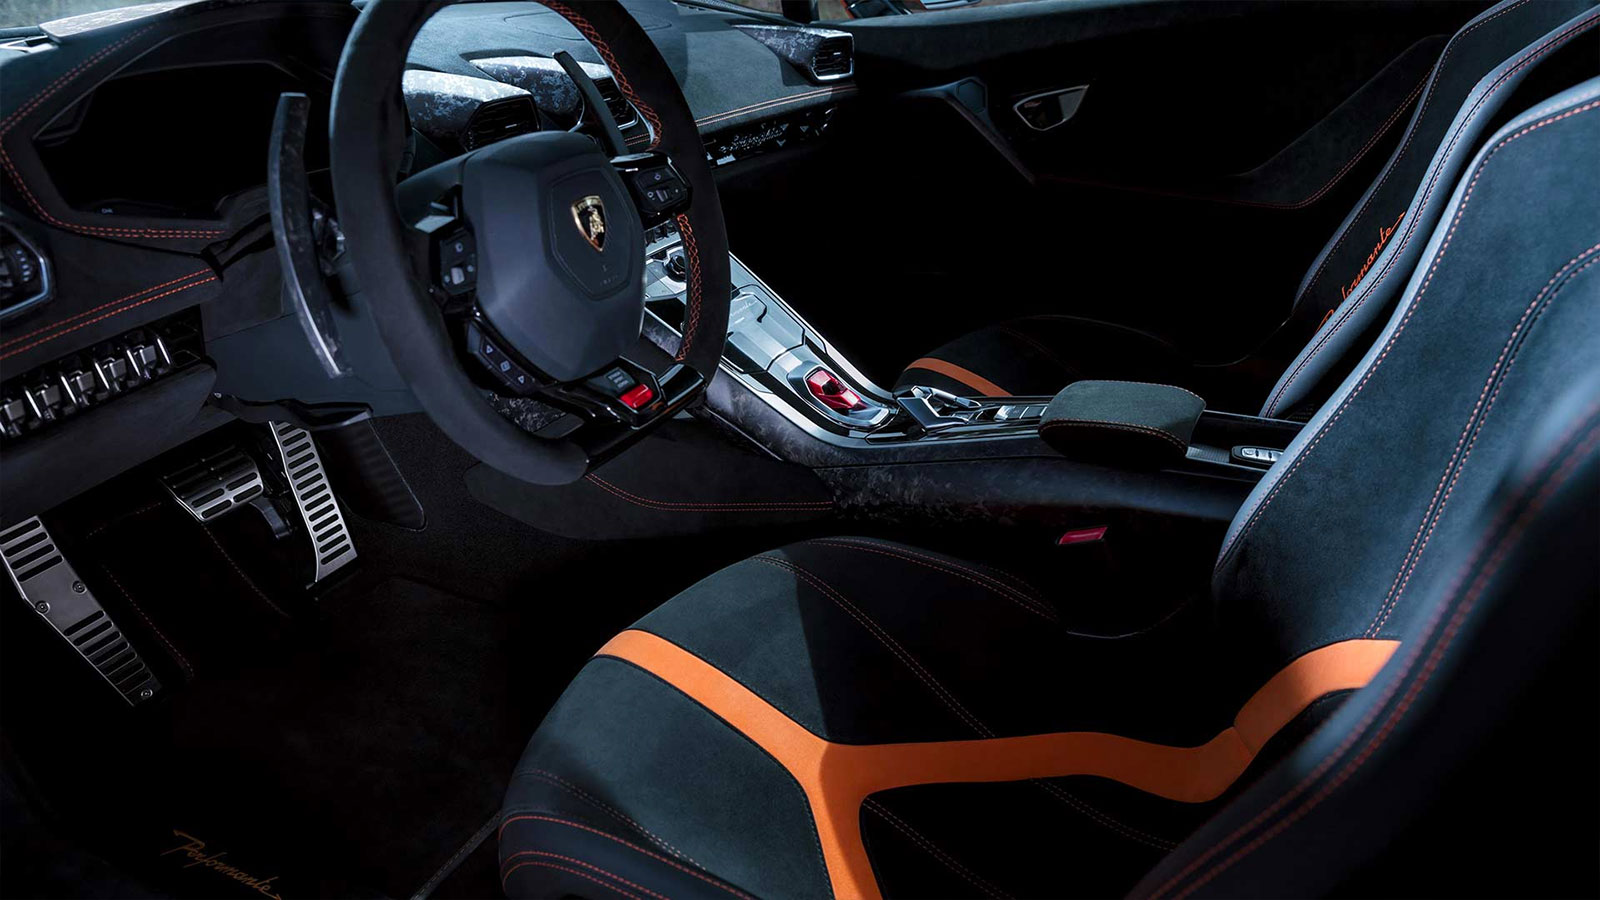 Lamborghini Huracan Performante - Raging Technology image 10